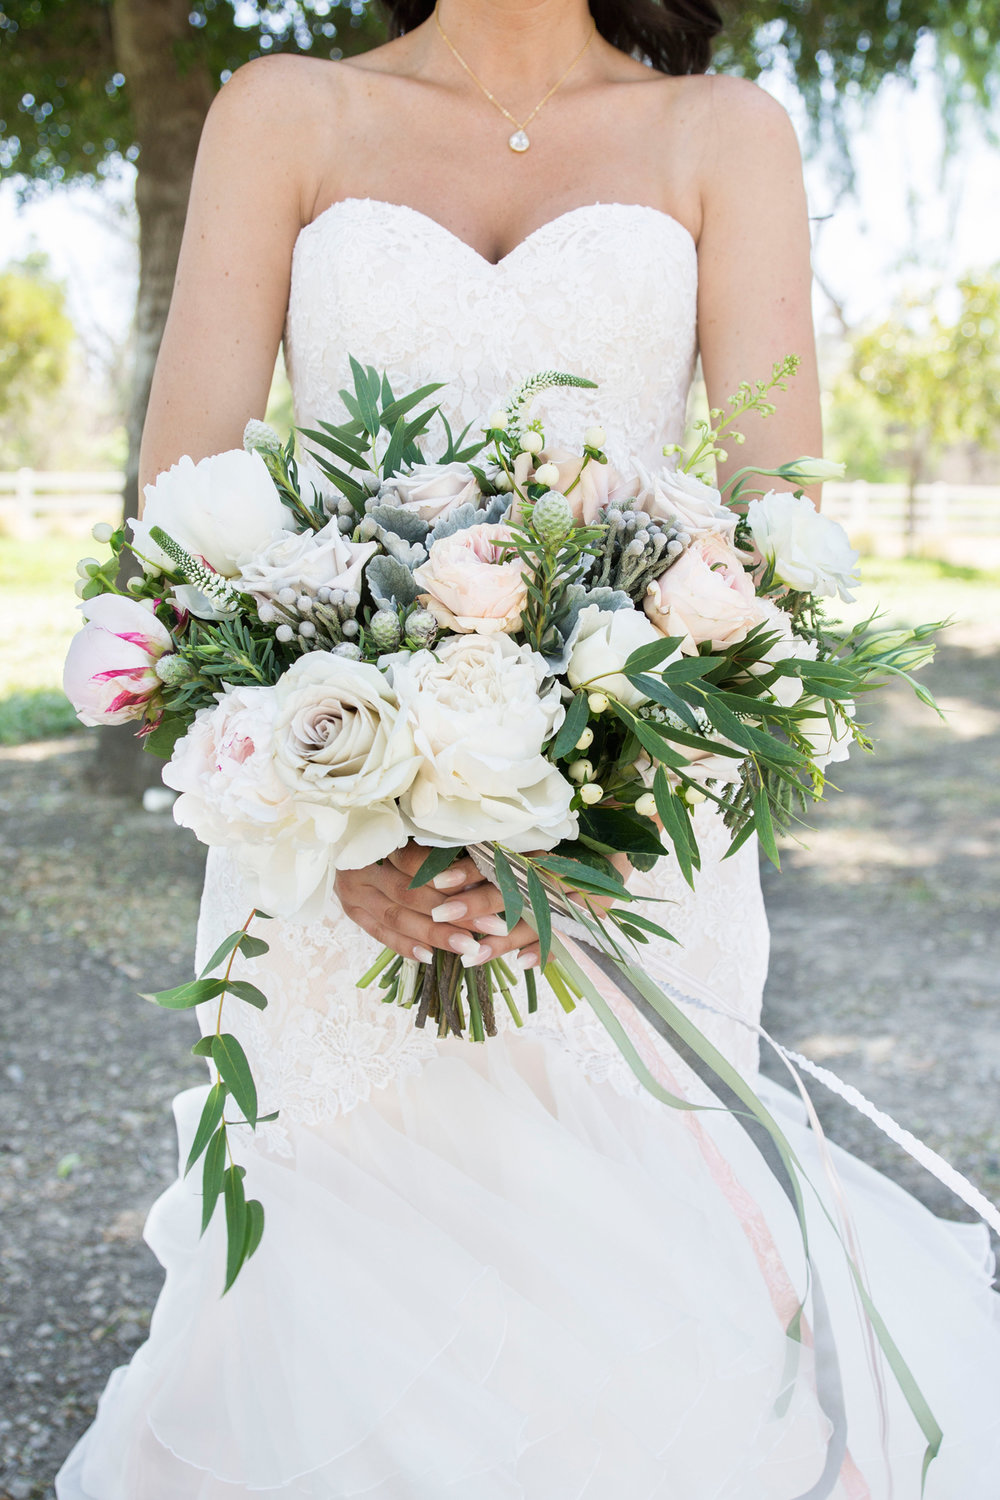 Green and White Wedding Bouquet - A McCoy Equestrian Center Wedding - Peterson Design & Photography